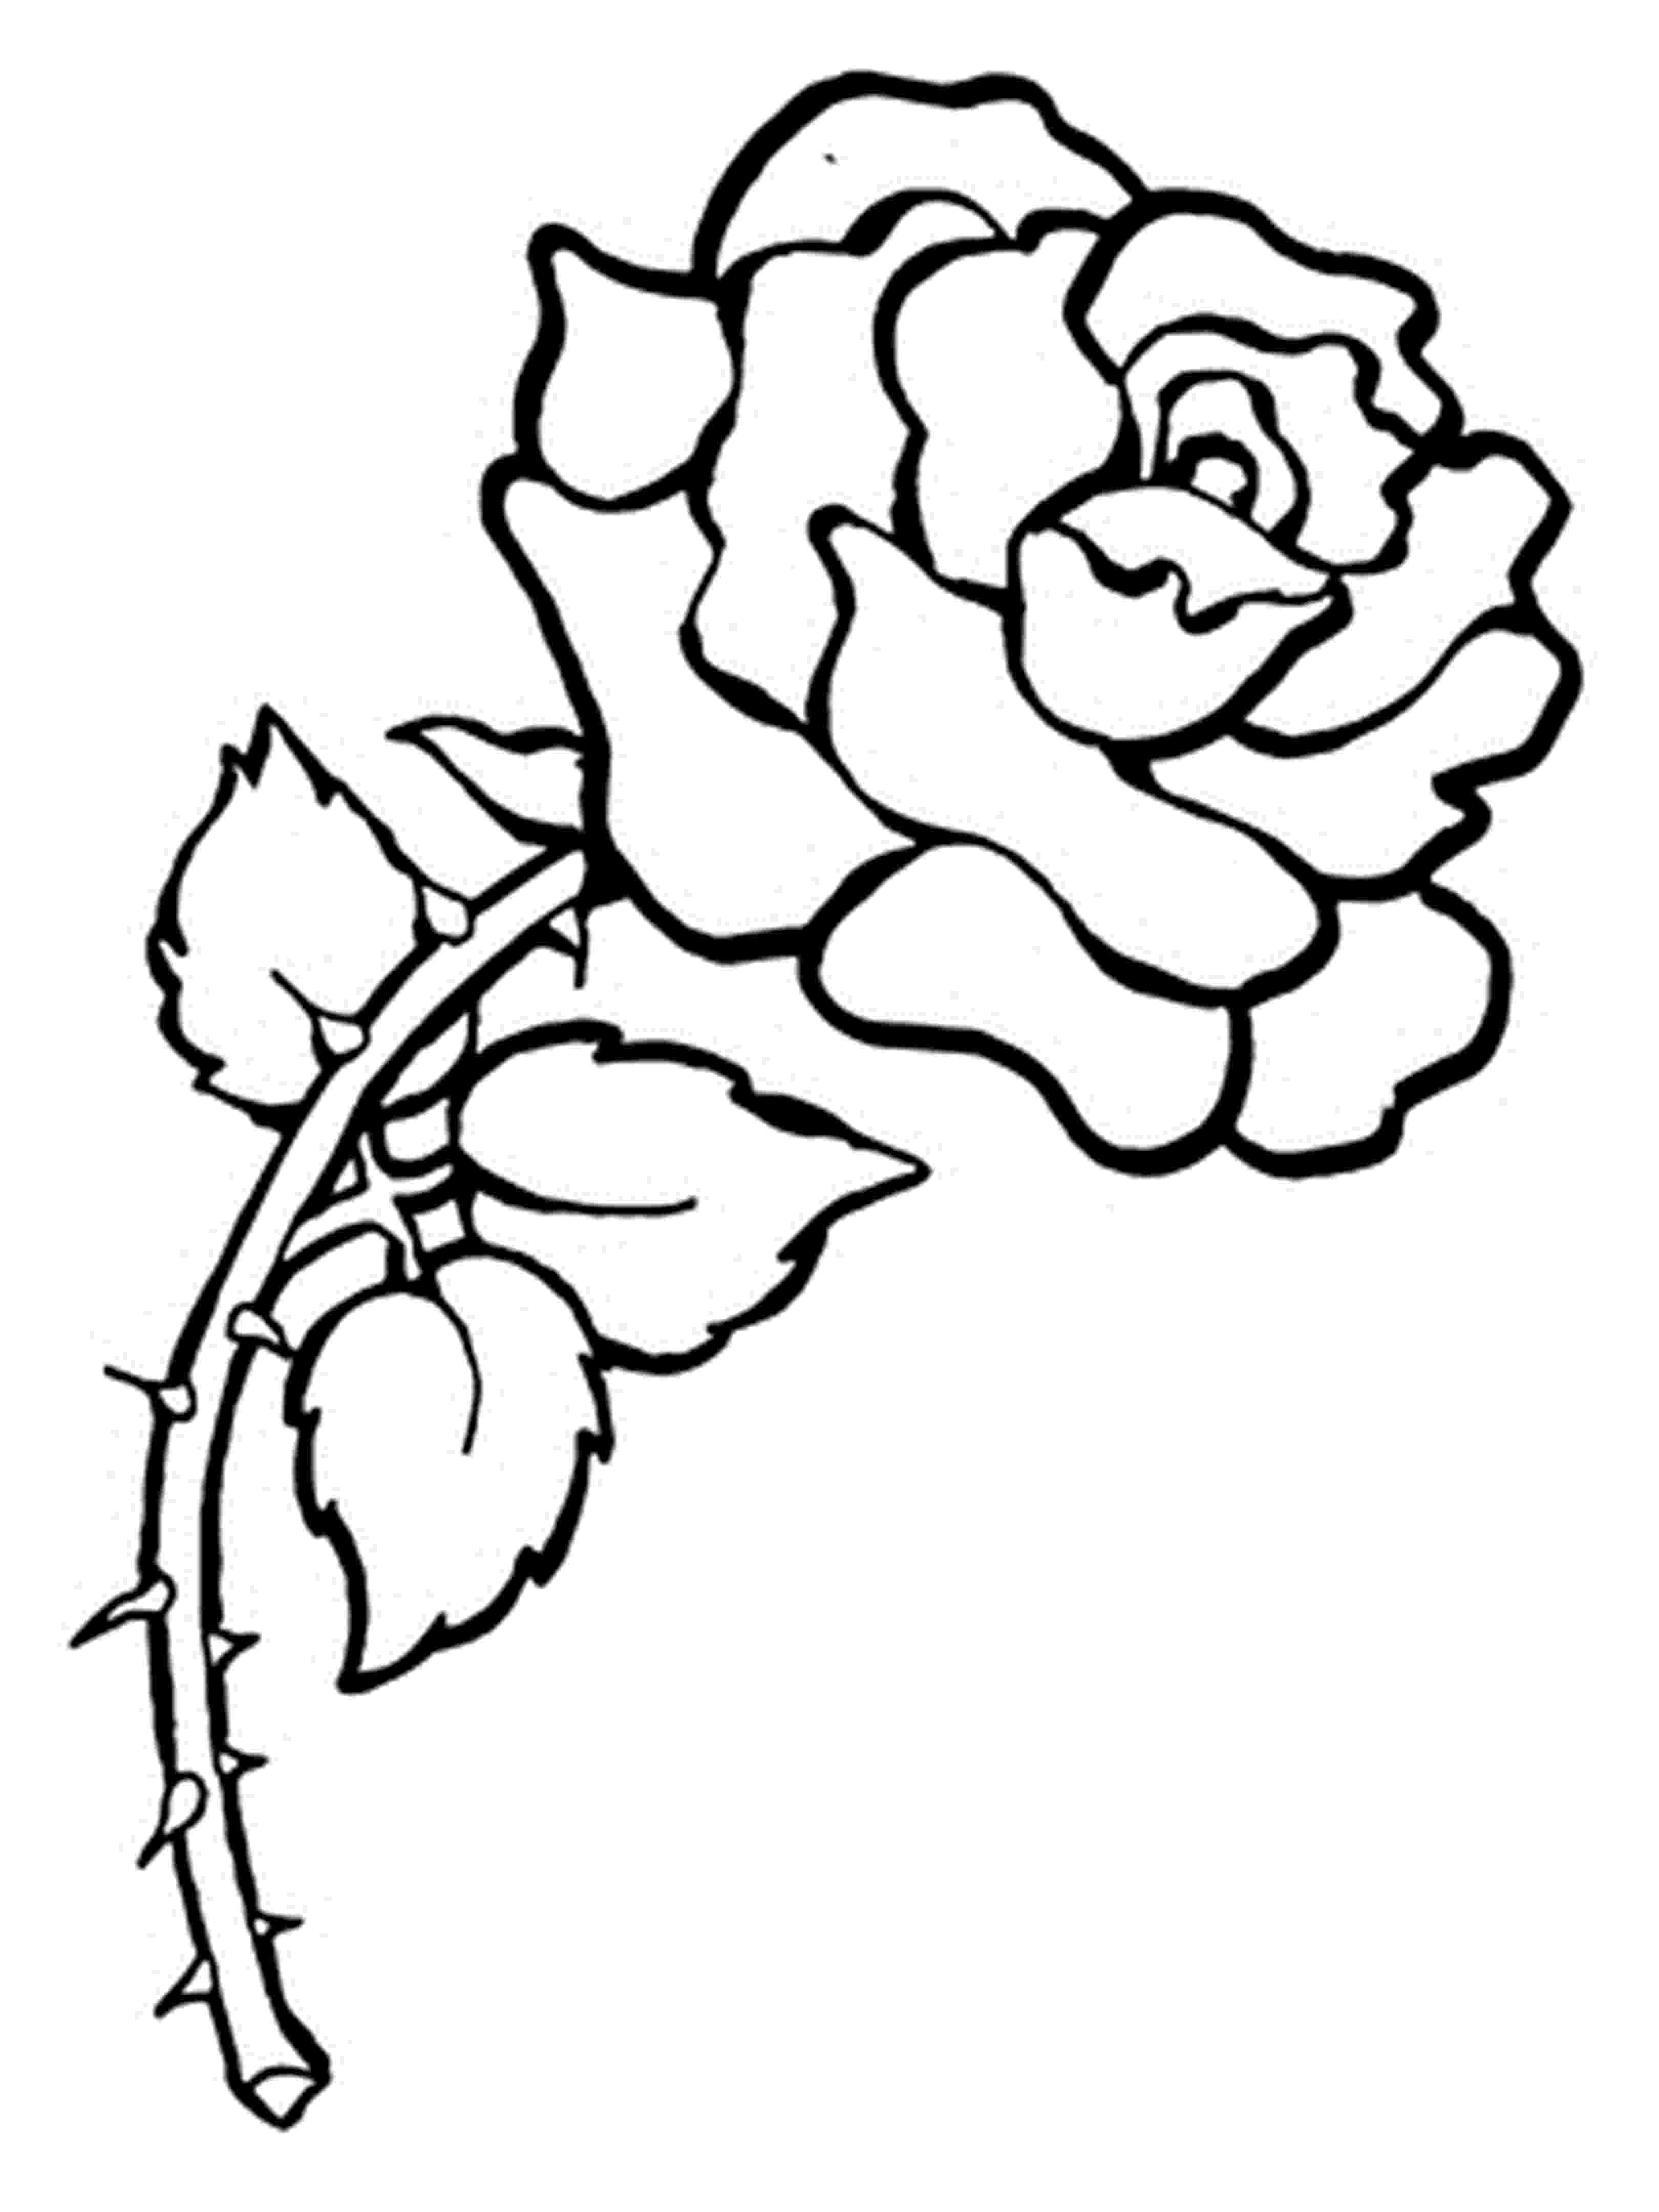 pictures of flowers to color free printables free printable flower coloring pages for kids best of free pictures flowers color to printables